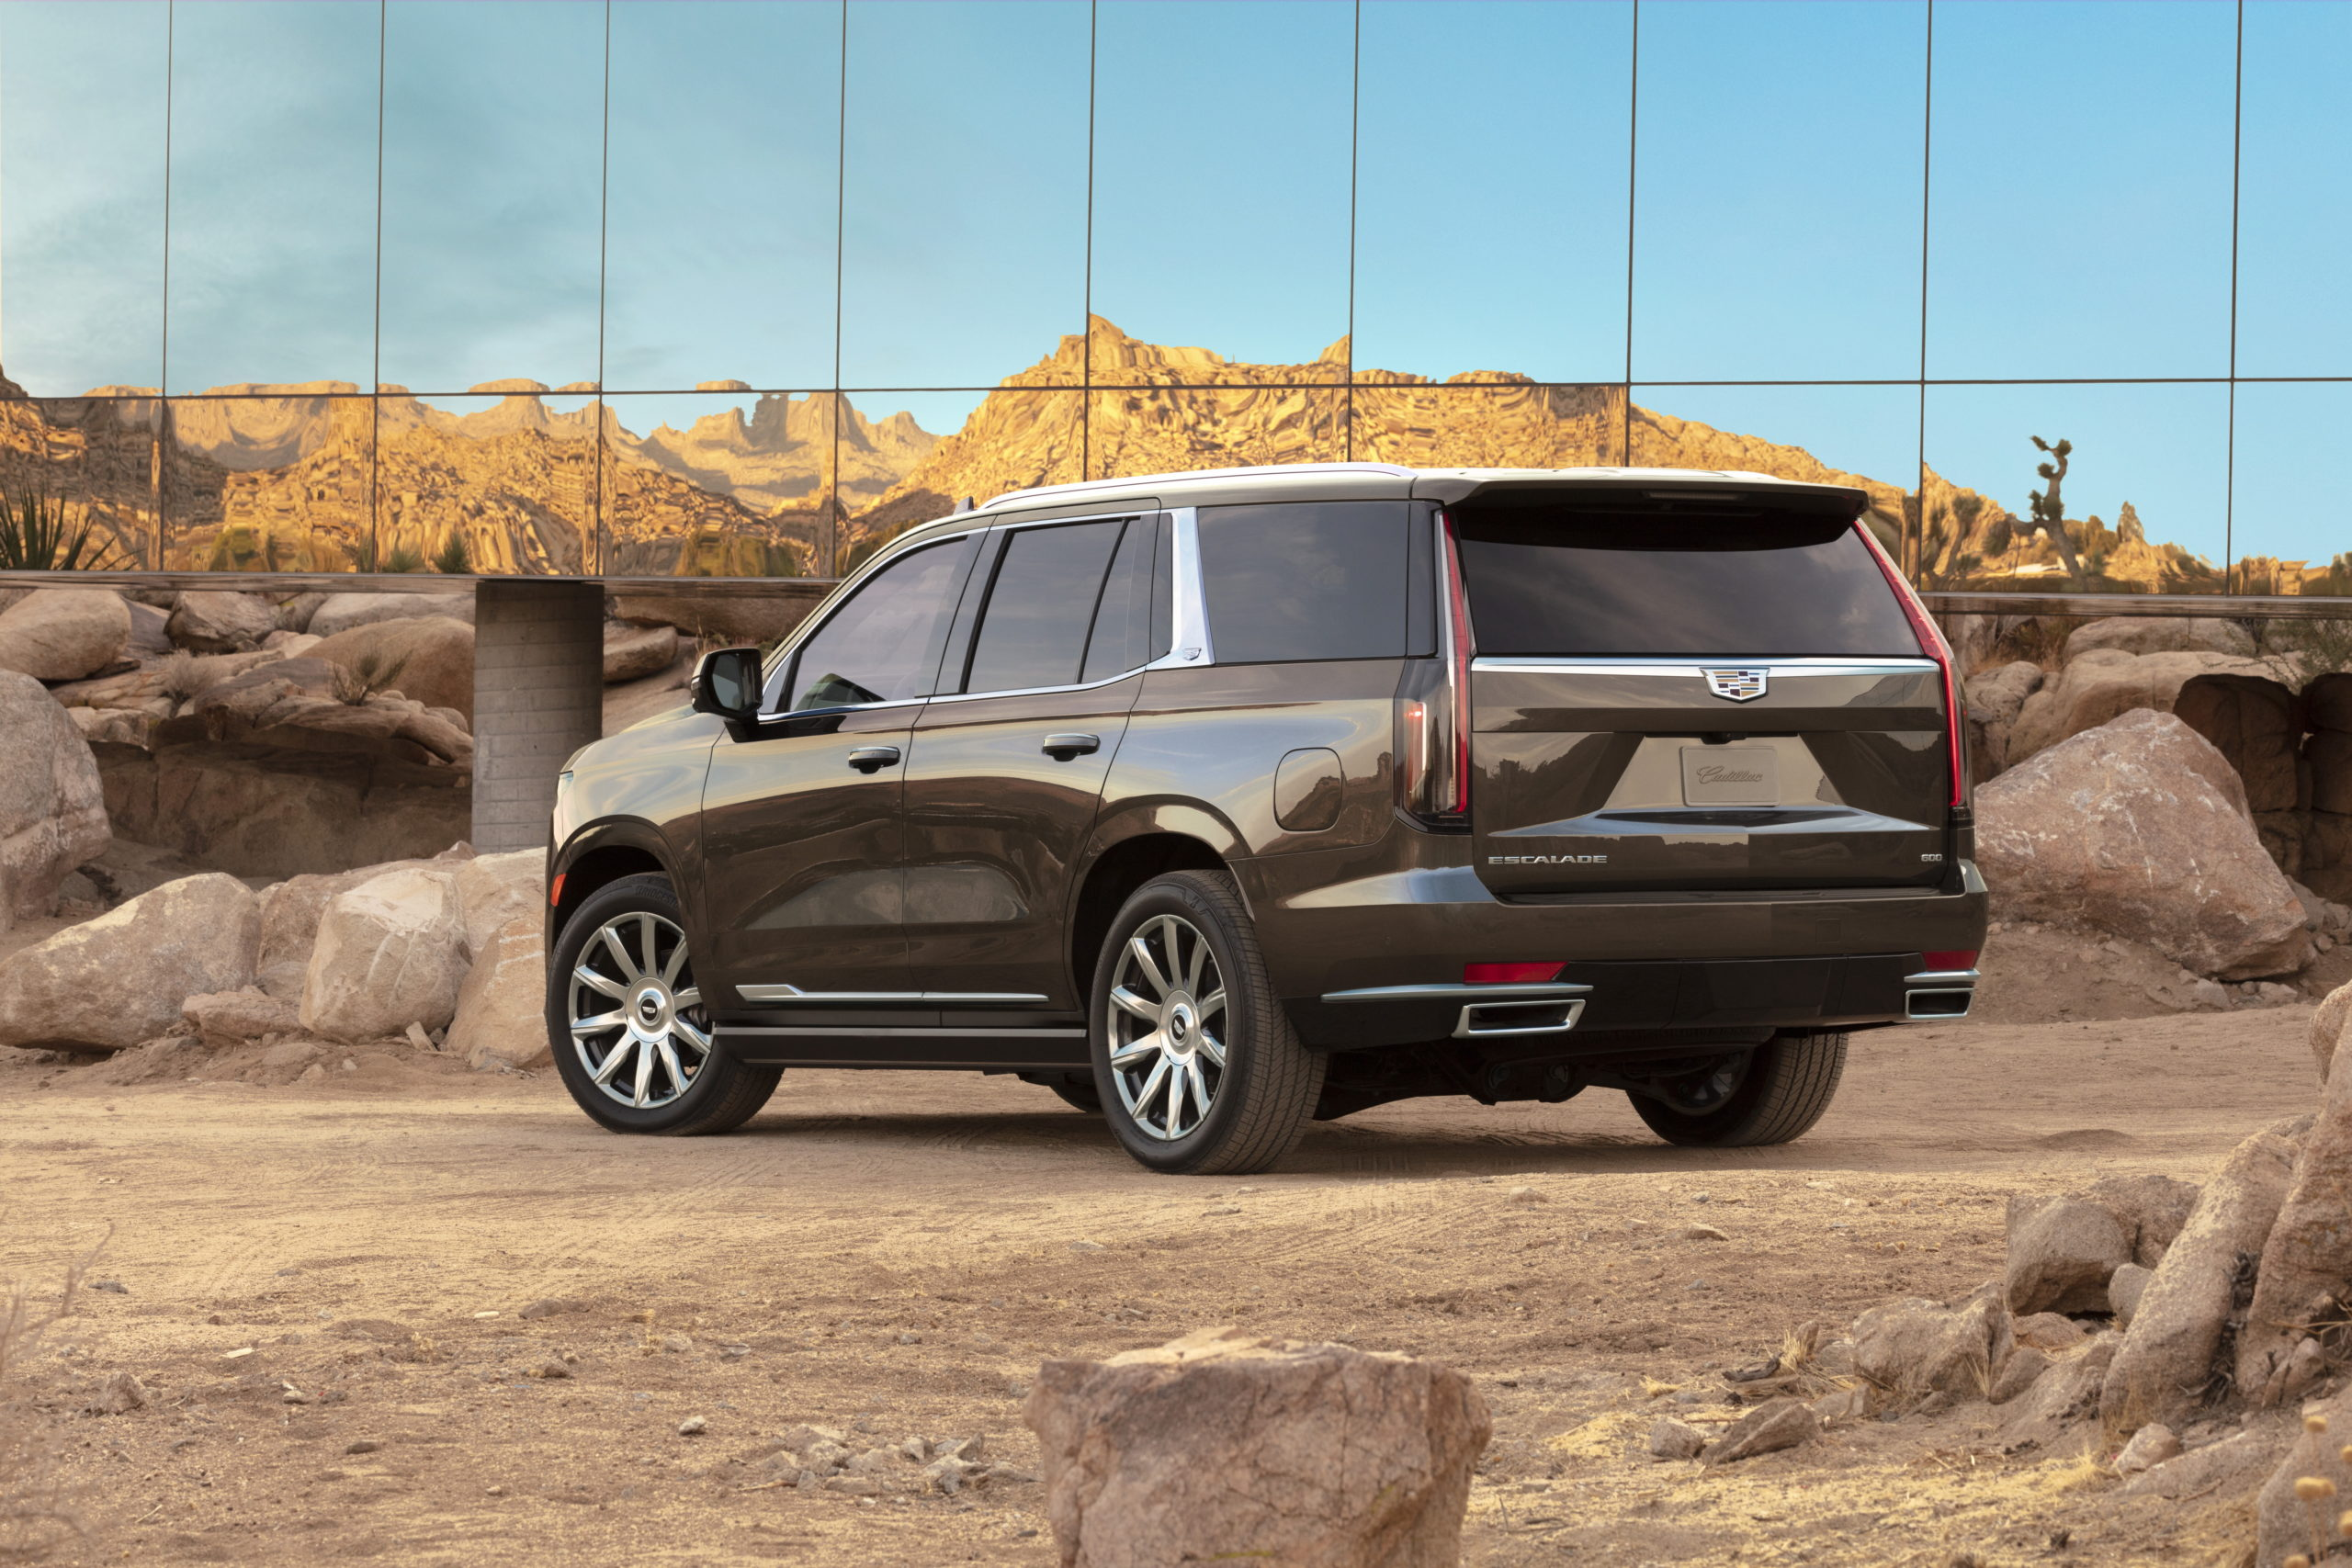 The 2021 Escalade has the bold presence and exclusive technology